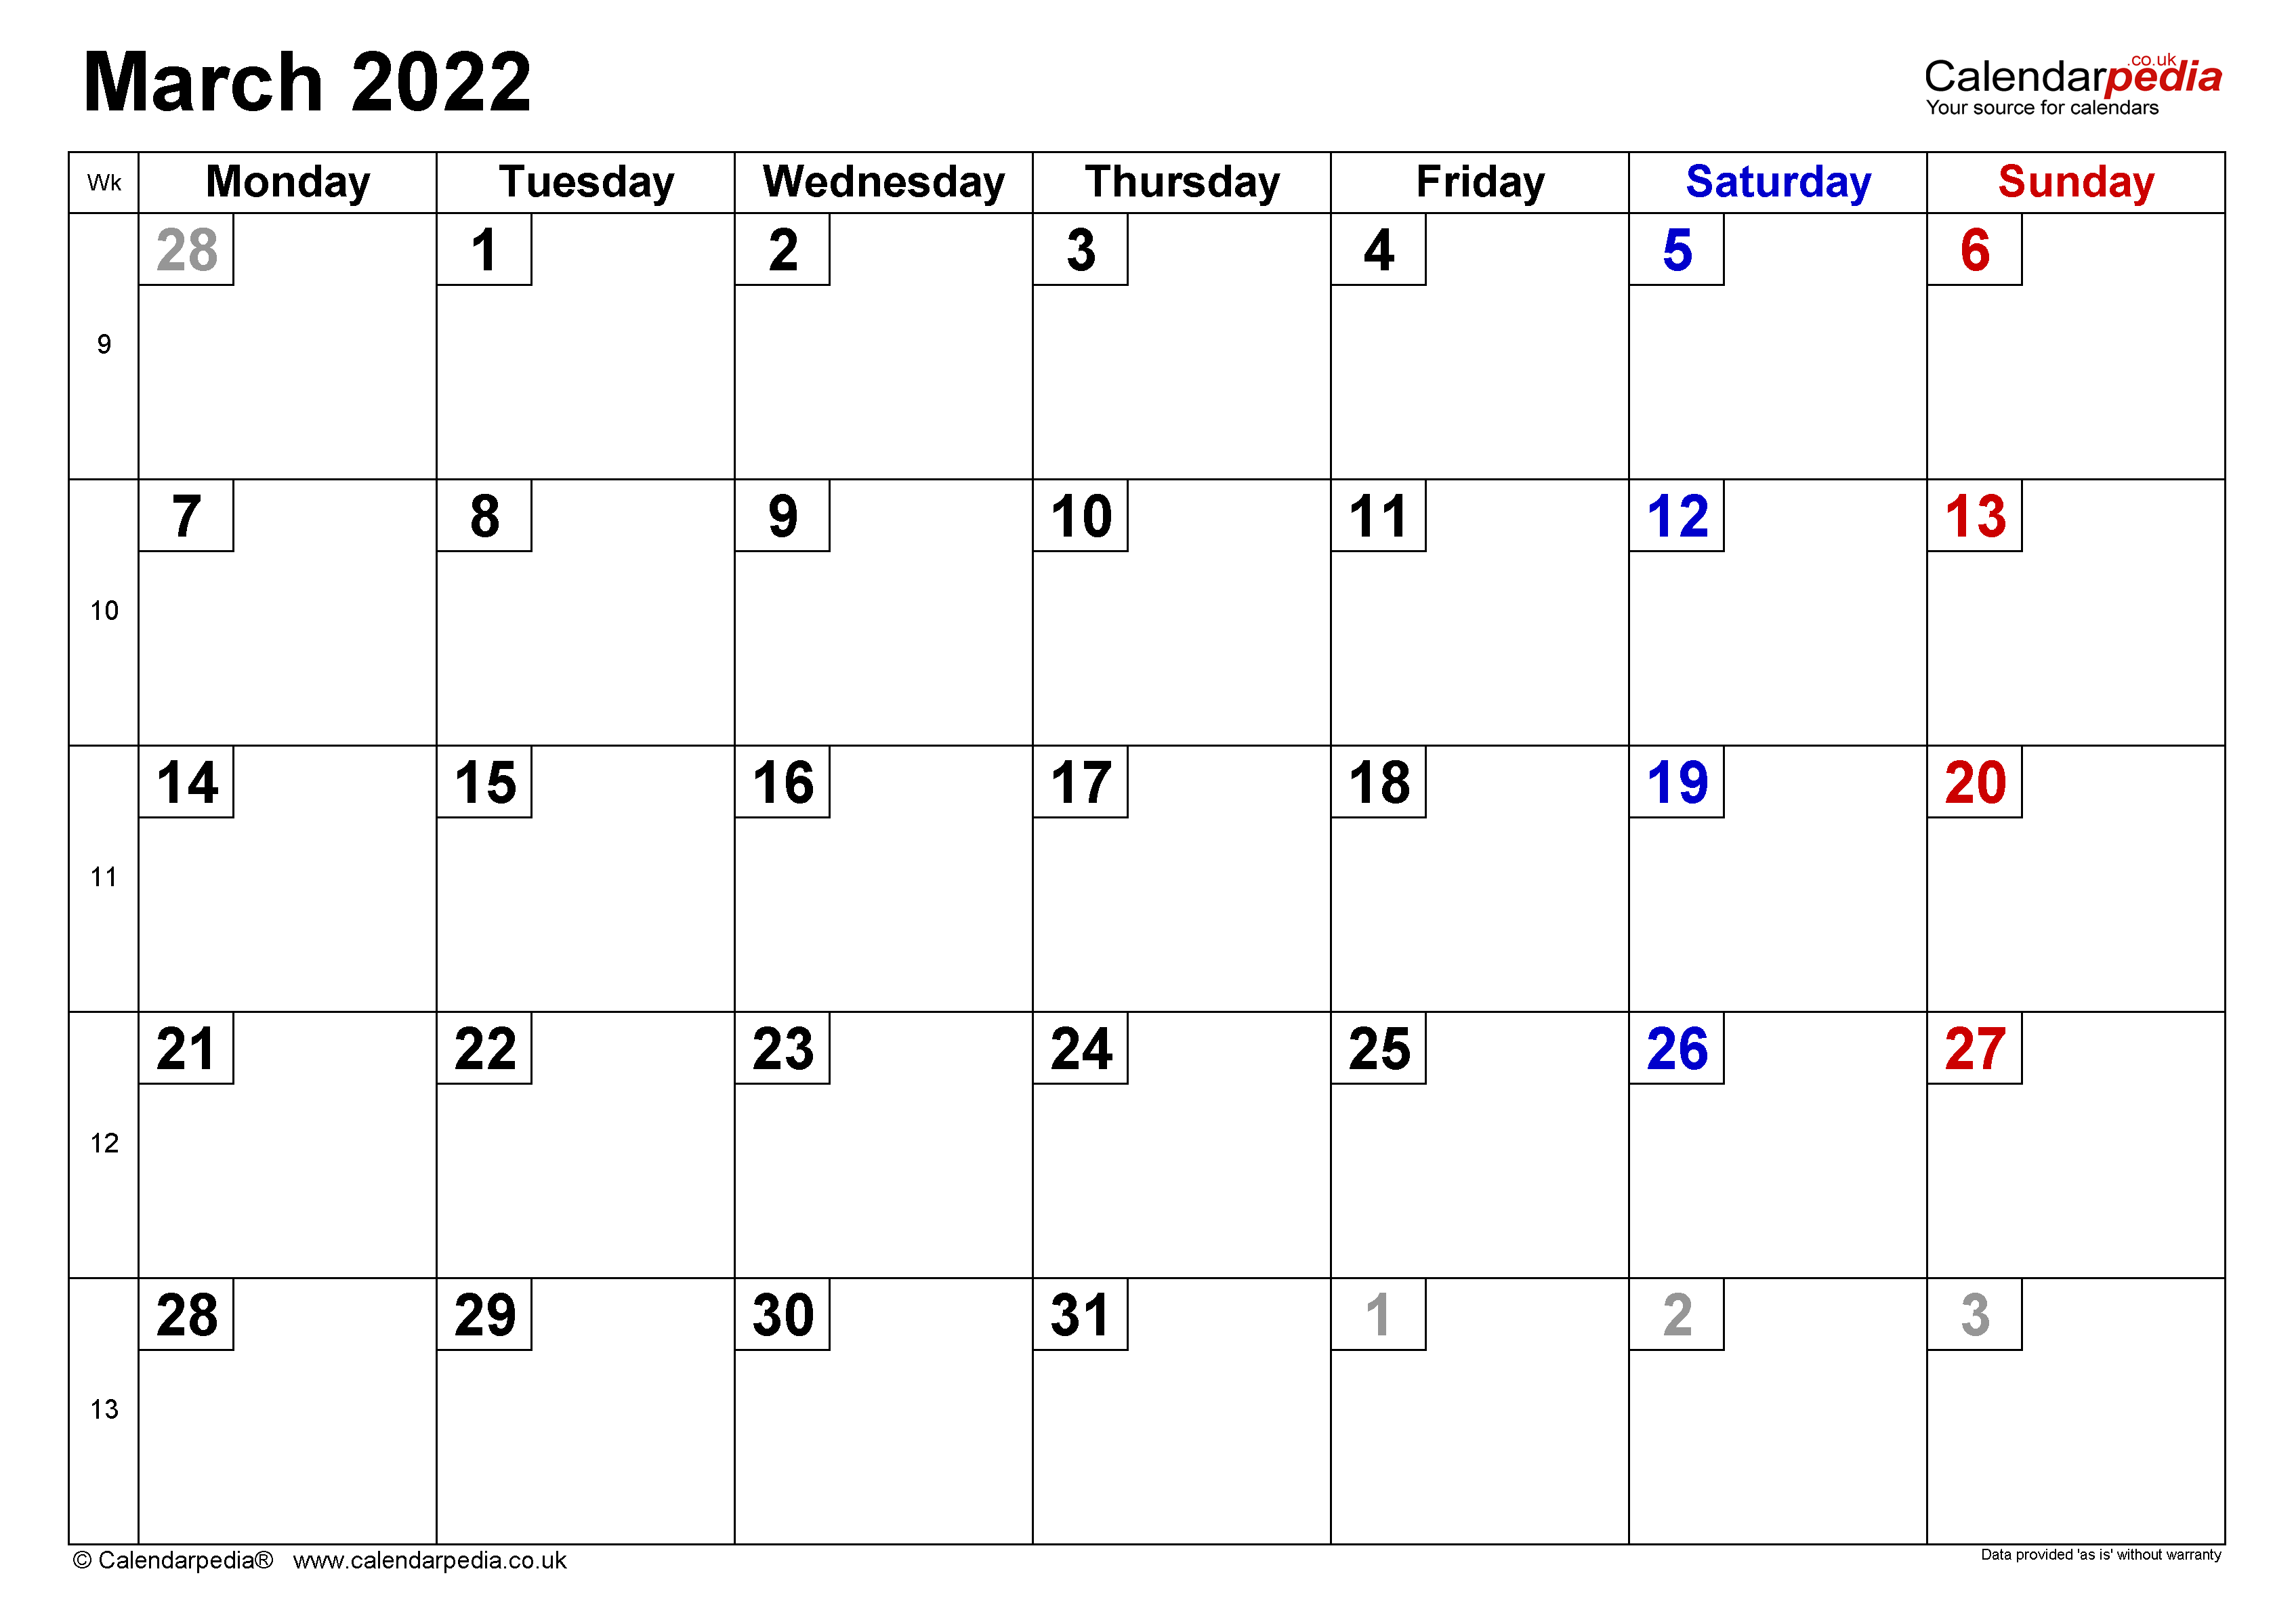 Calendar March 2022 Uk With Excel, Word And Pdf Templates With Regard To 2022 Calendar March And April